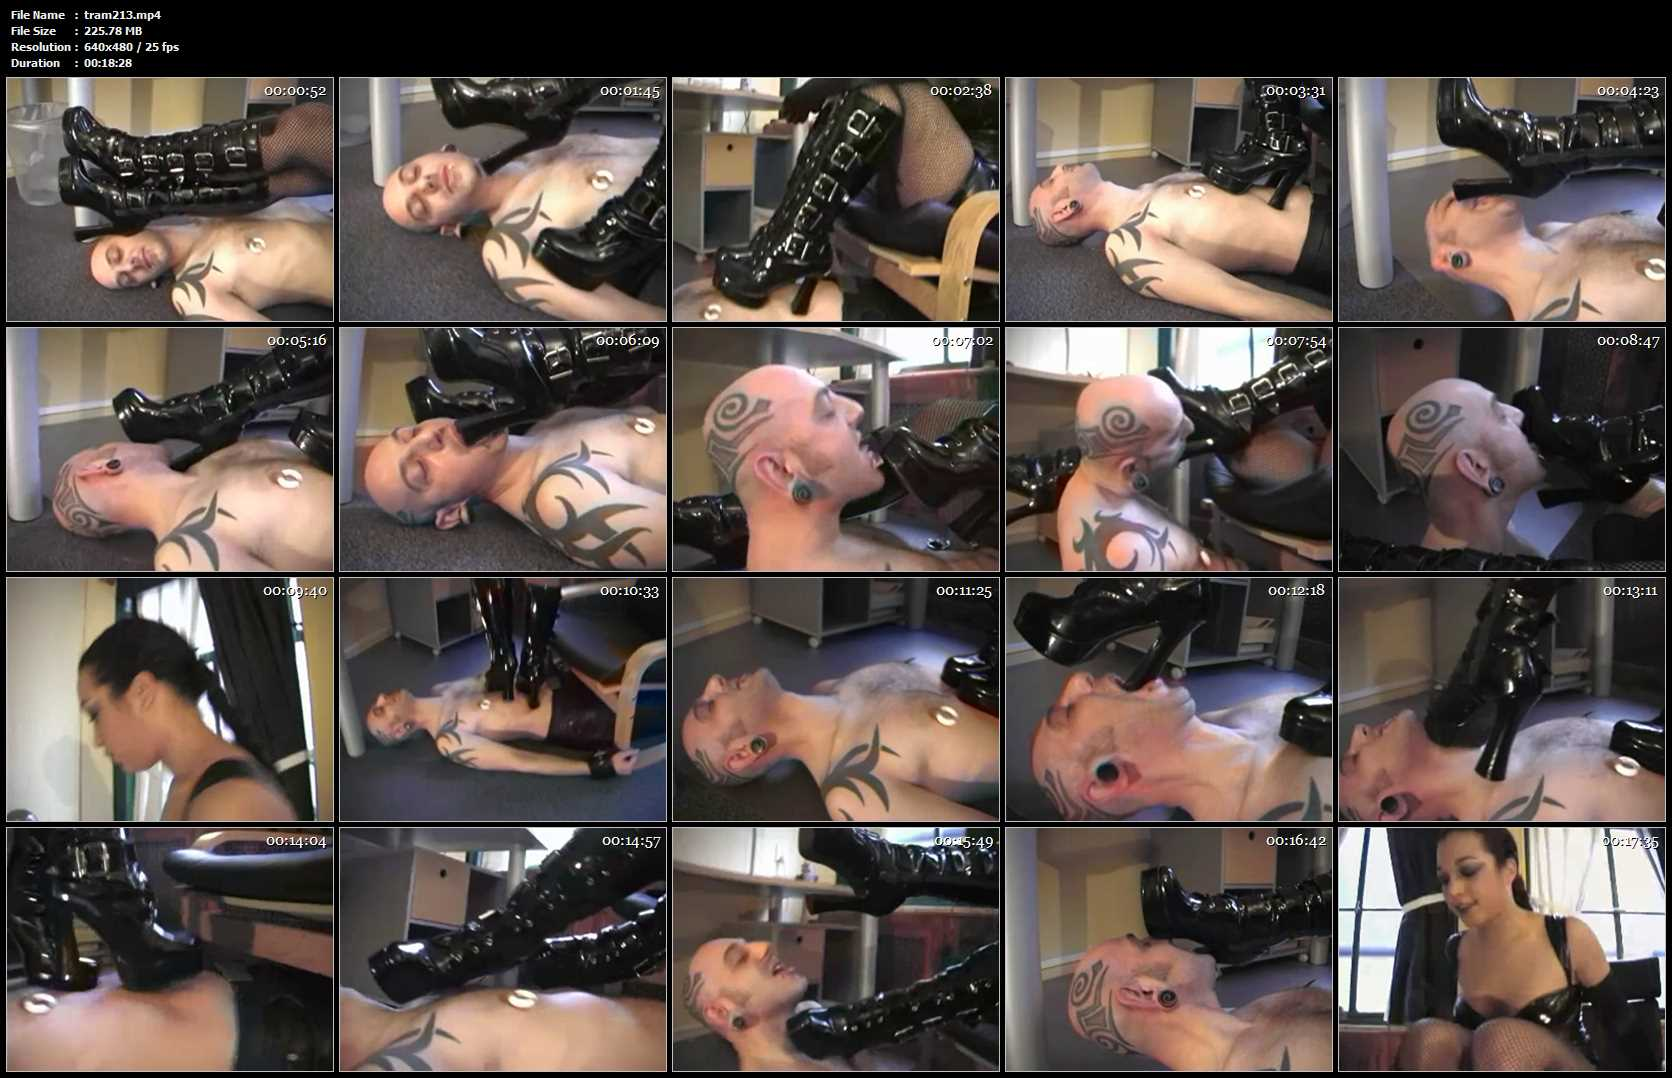 LADY YVAN 1 - TRAMPLE-AMSTERDAM - SD/480p/MP4